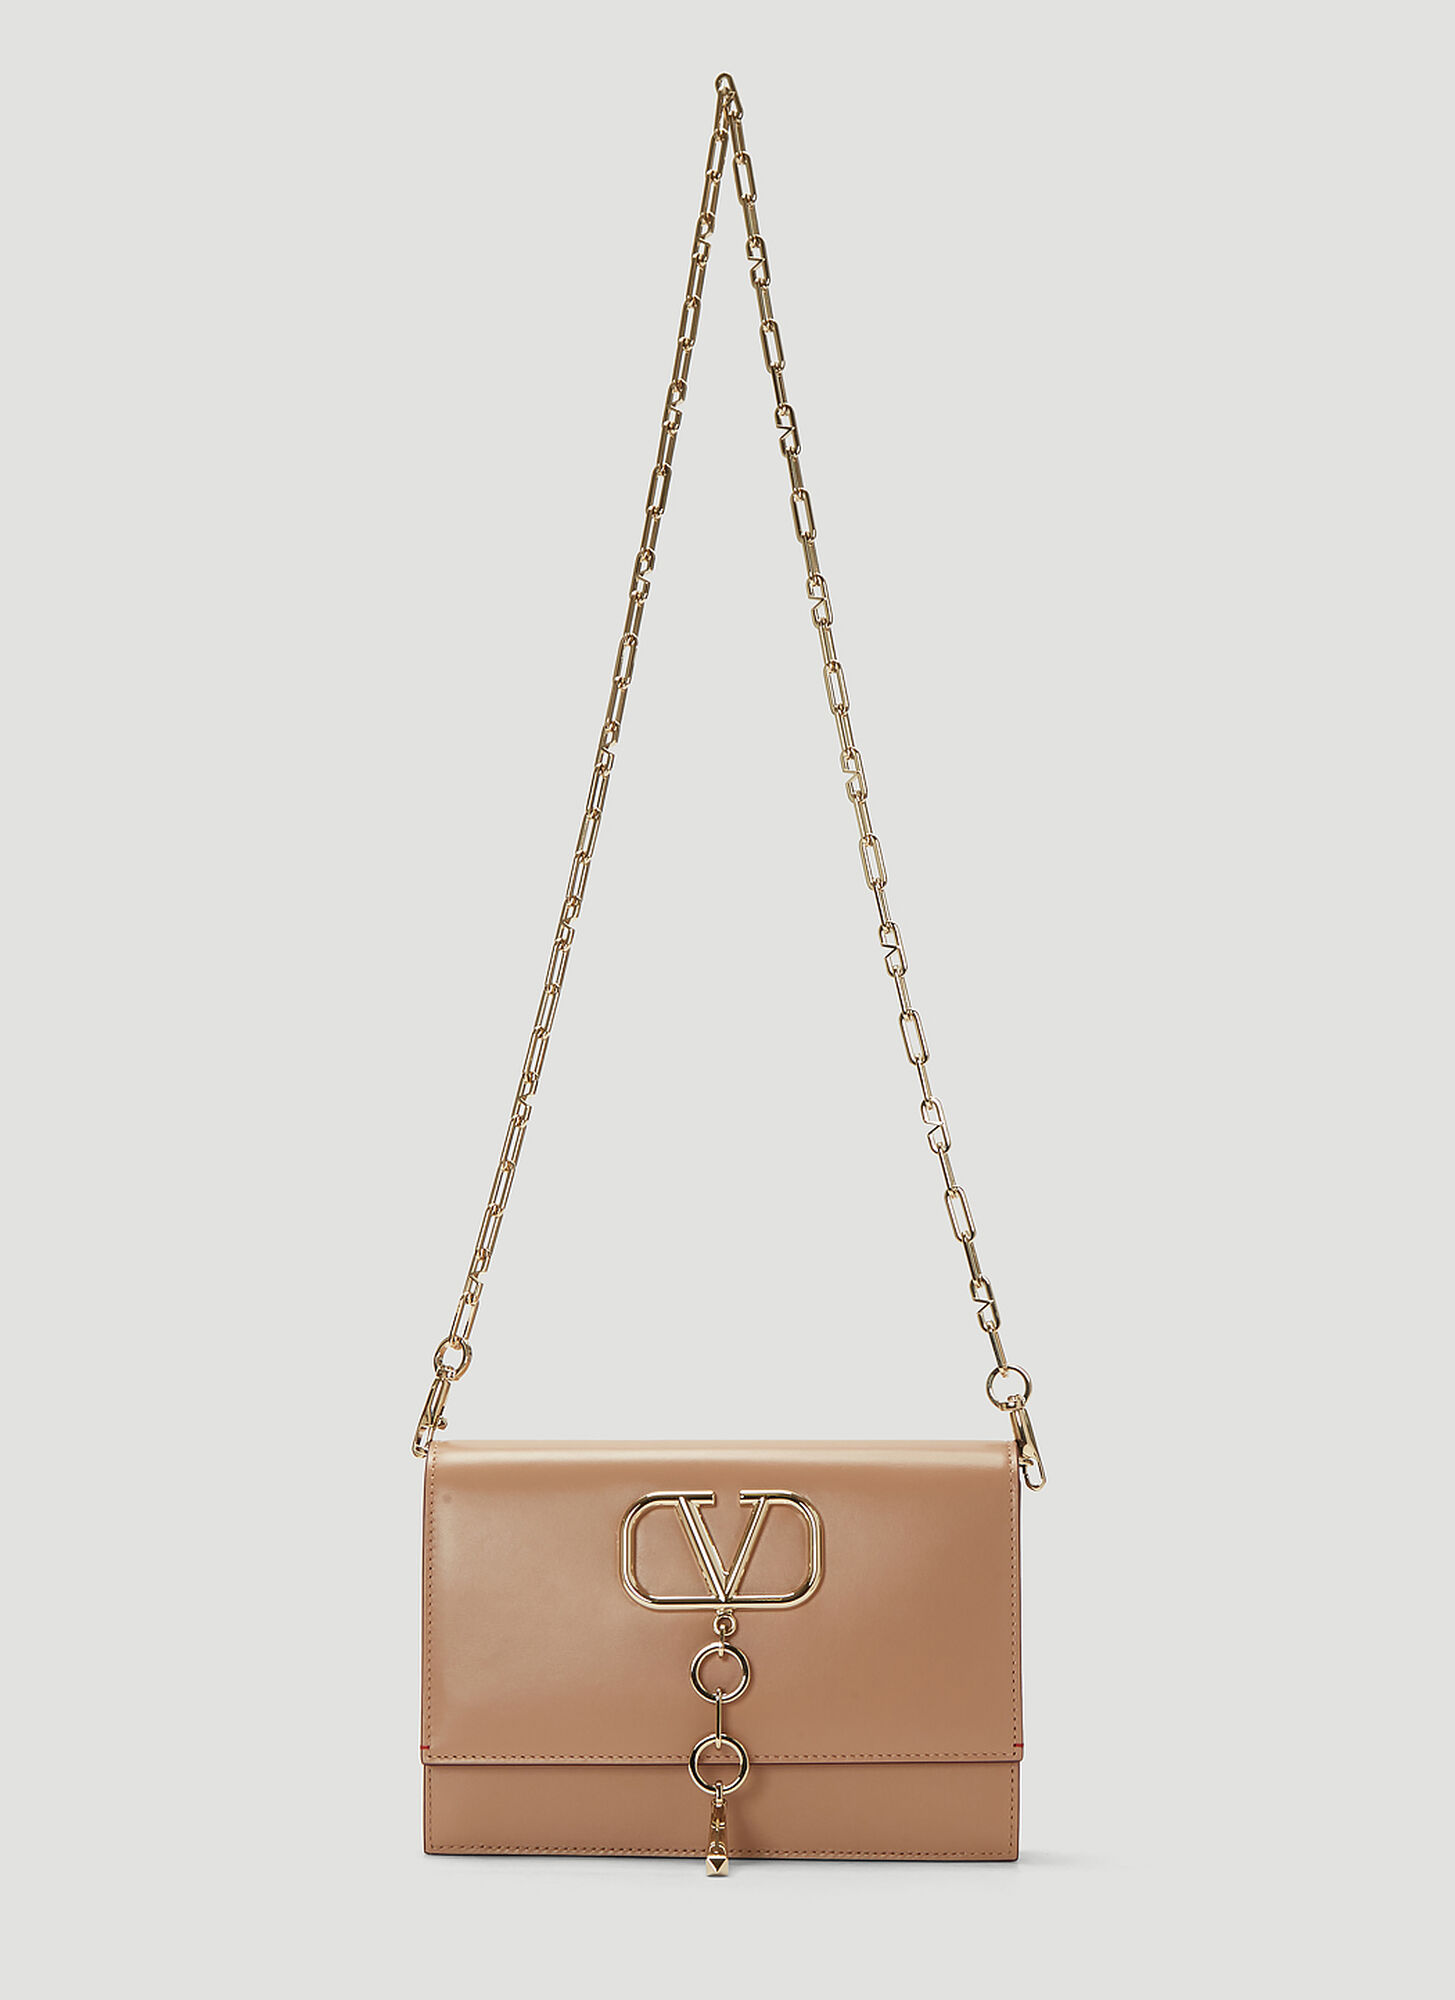 Valentino VLogo Chain Bag in Pink